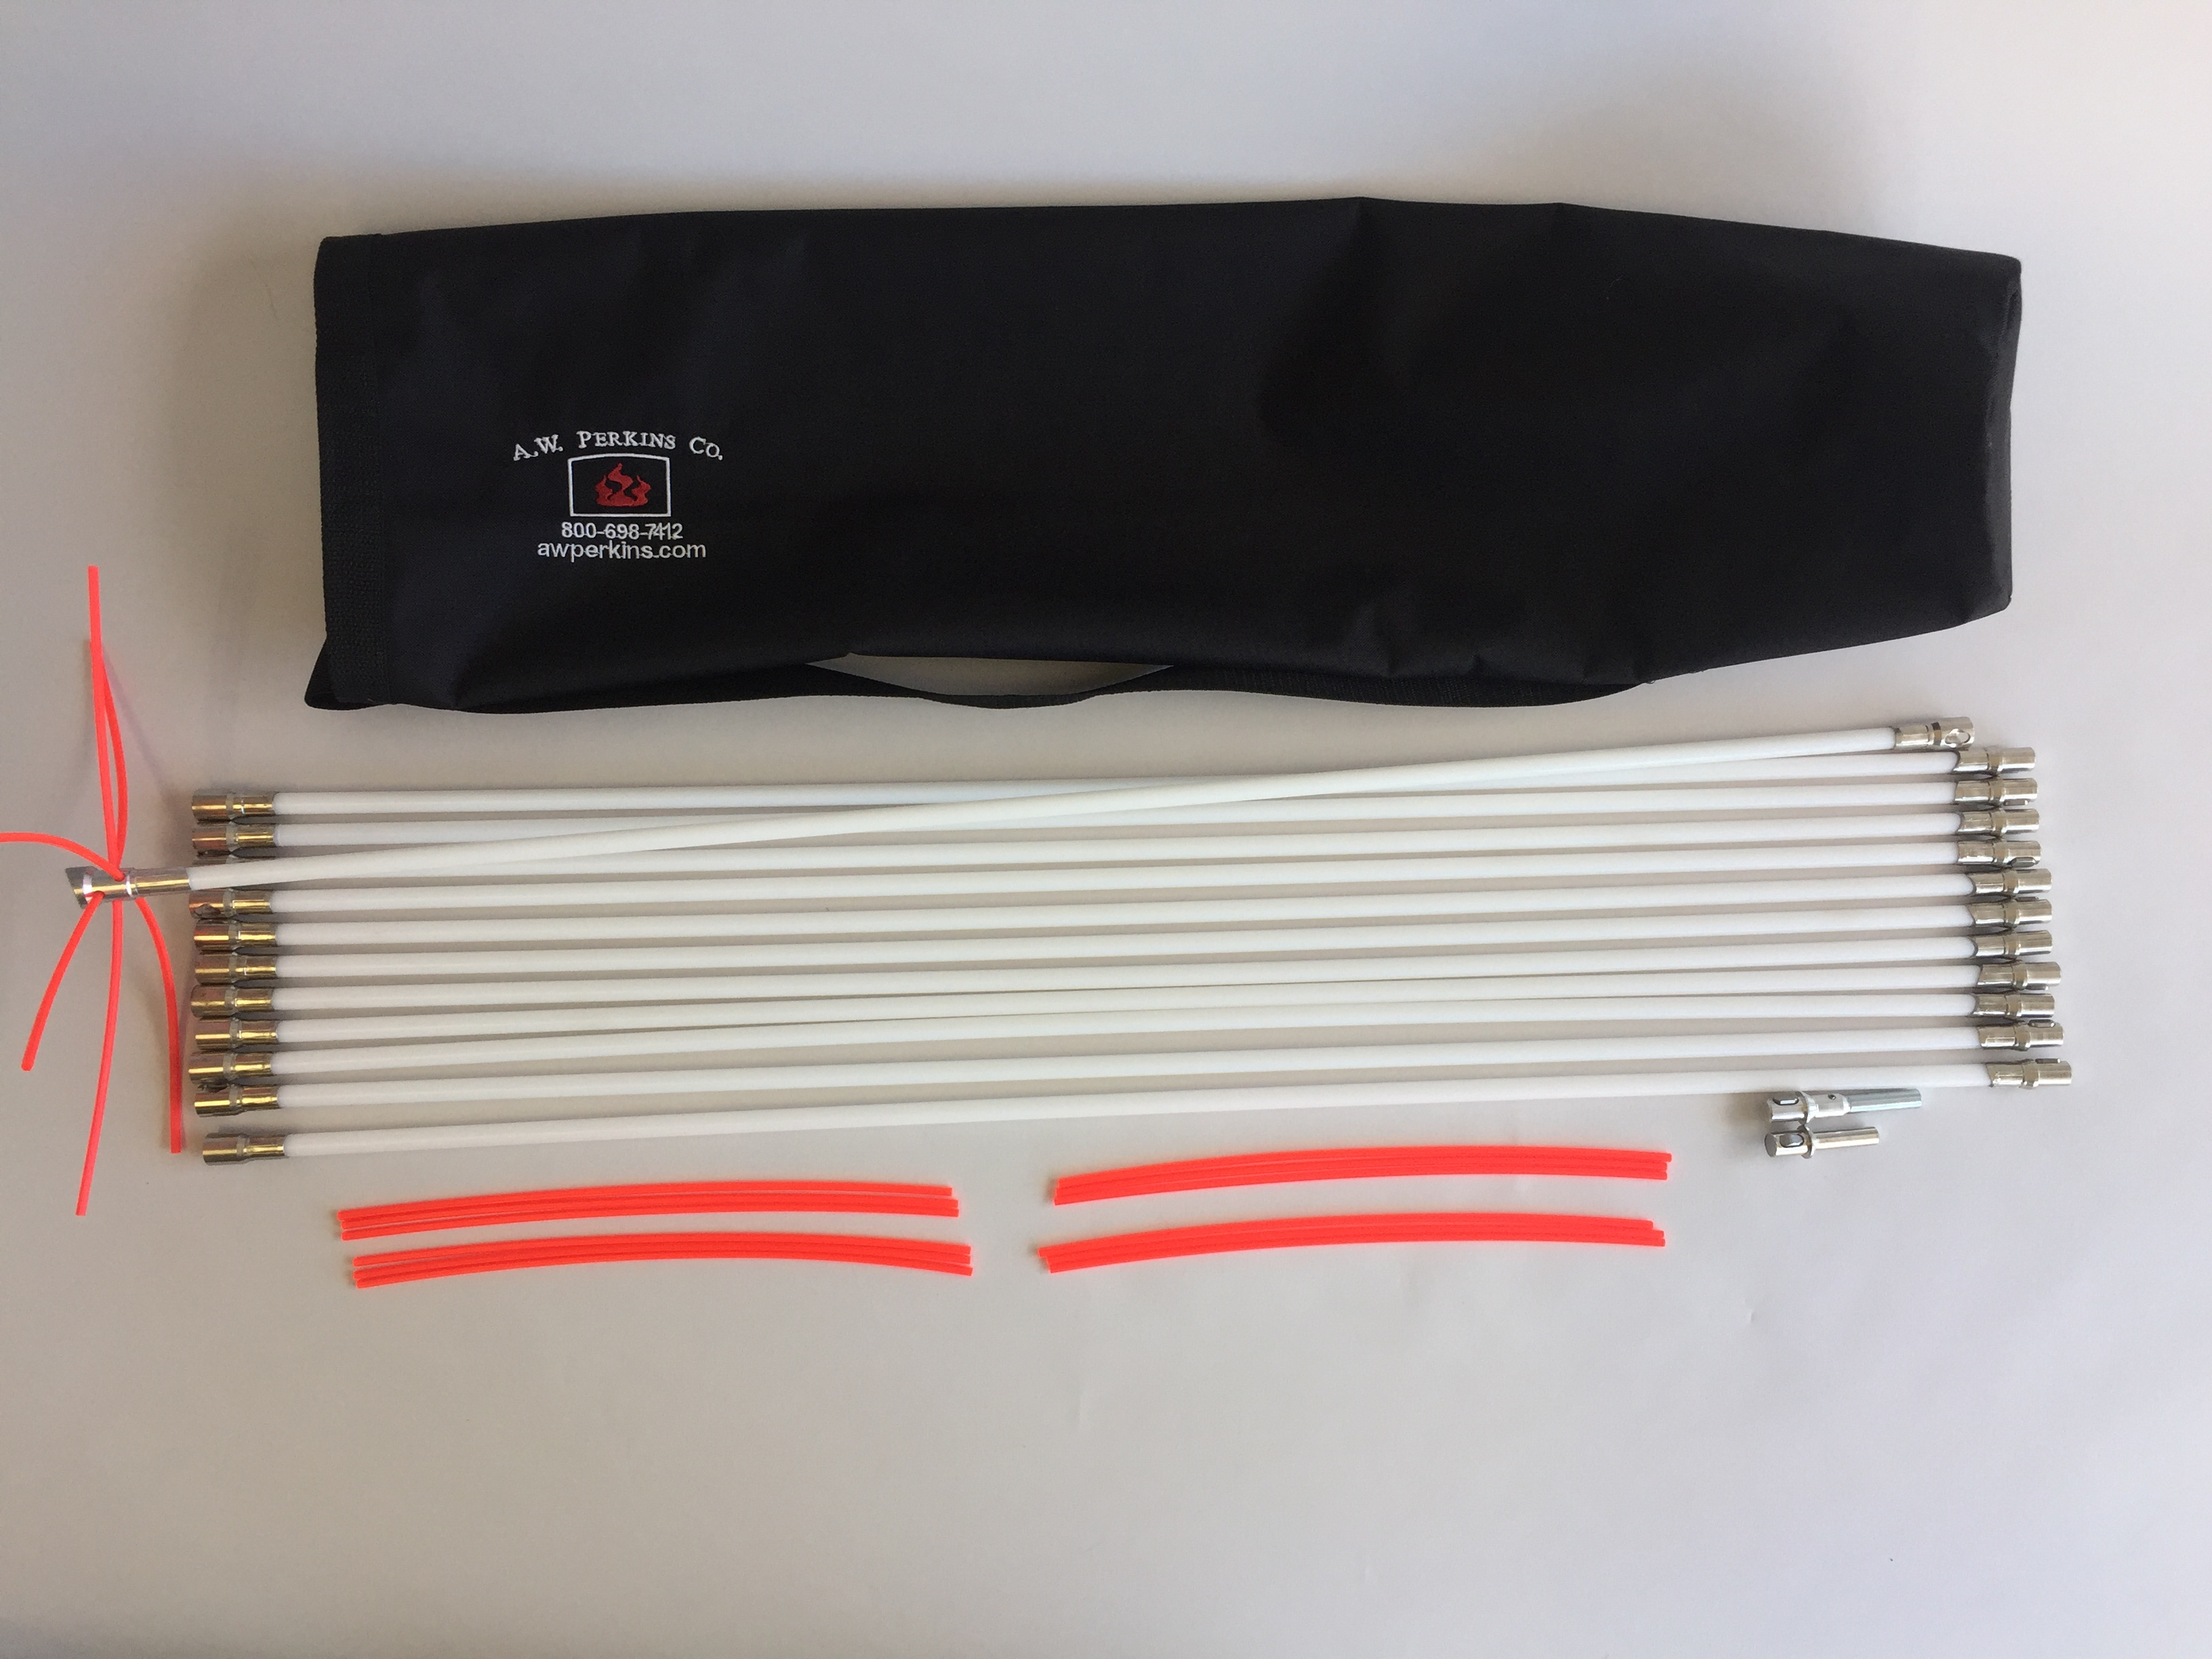 "7163KIT Liner/Class A 6"" Cleaning Kit with 7/16"" dia. Slick rods"